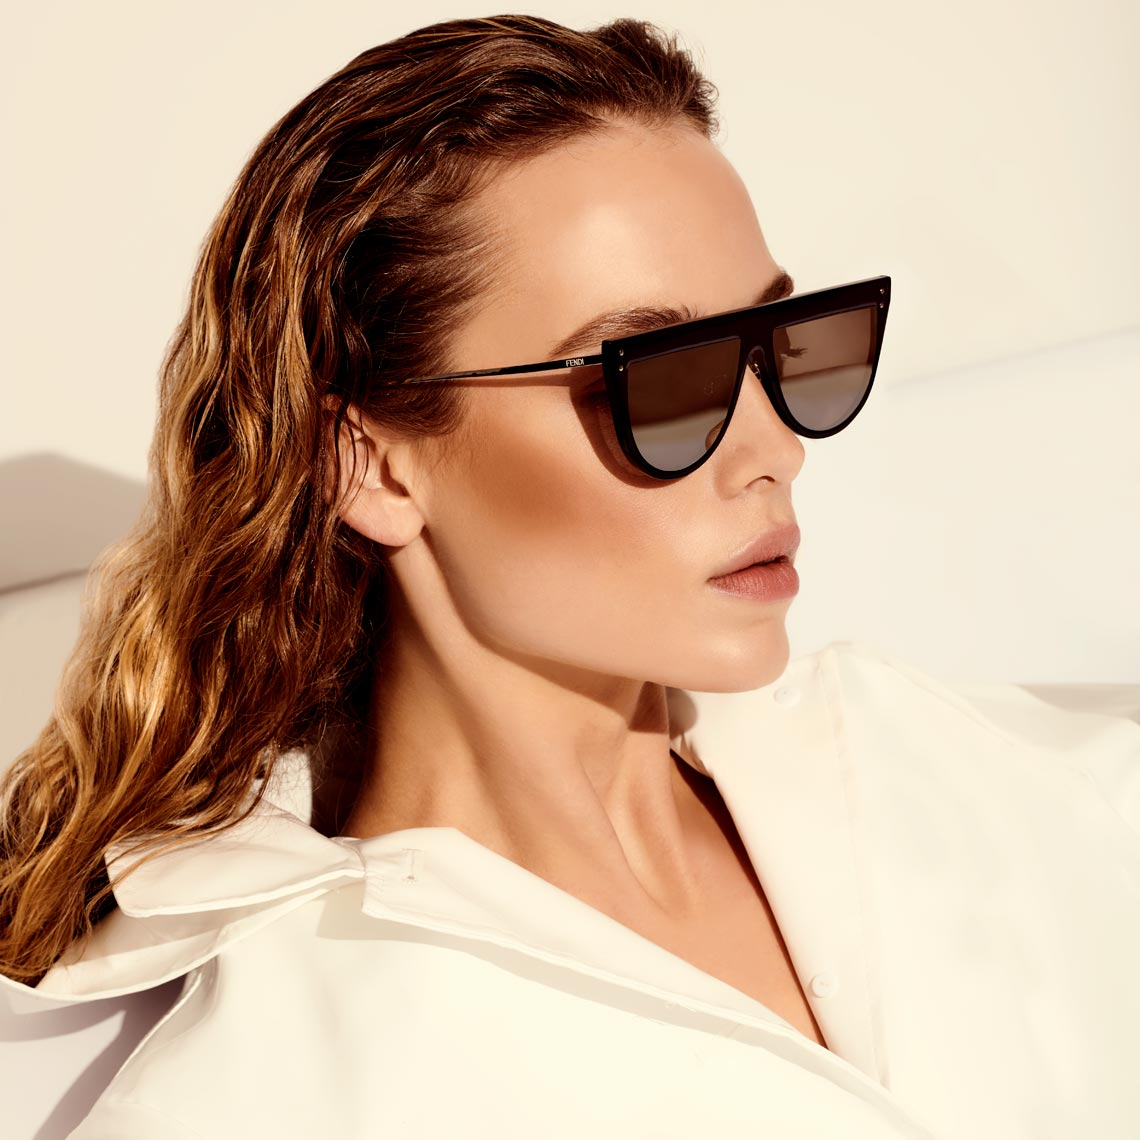 Jeff Stephens | Hanna Ferguson in Designer Sunglasses